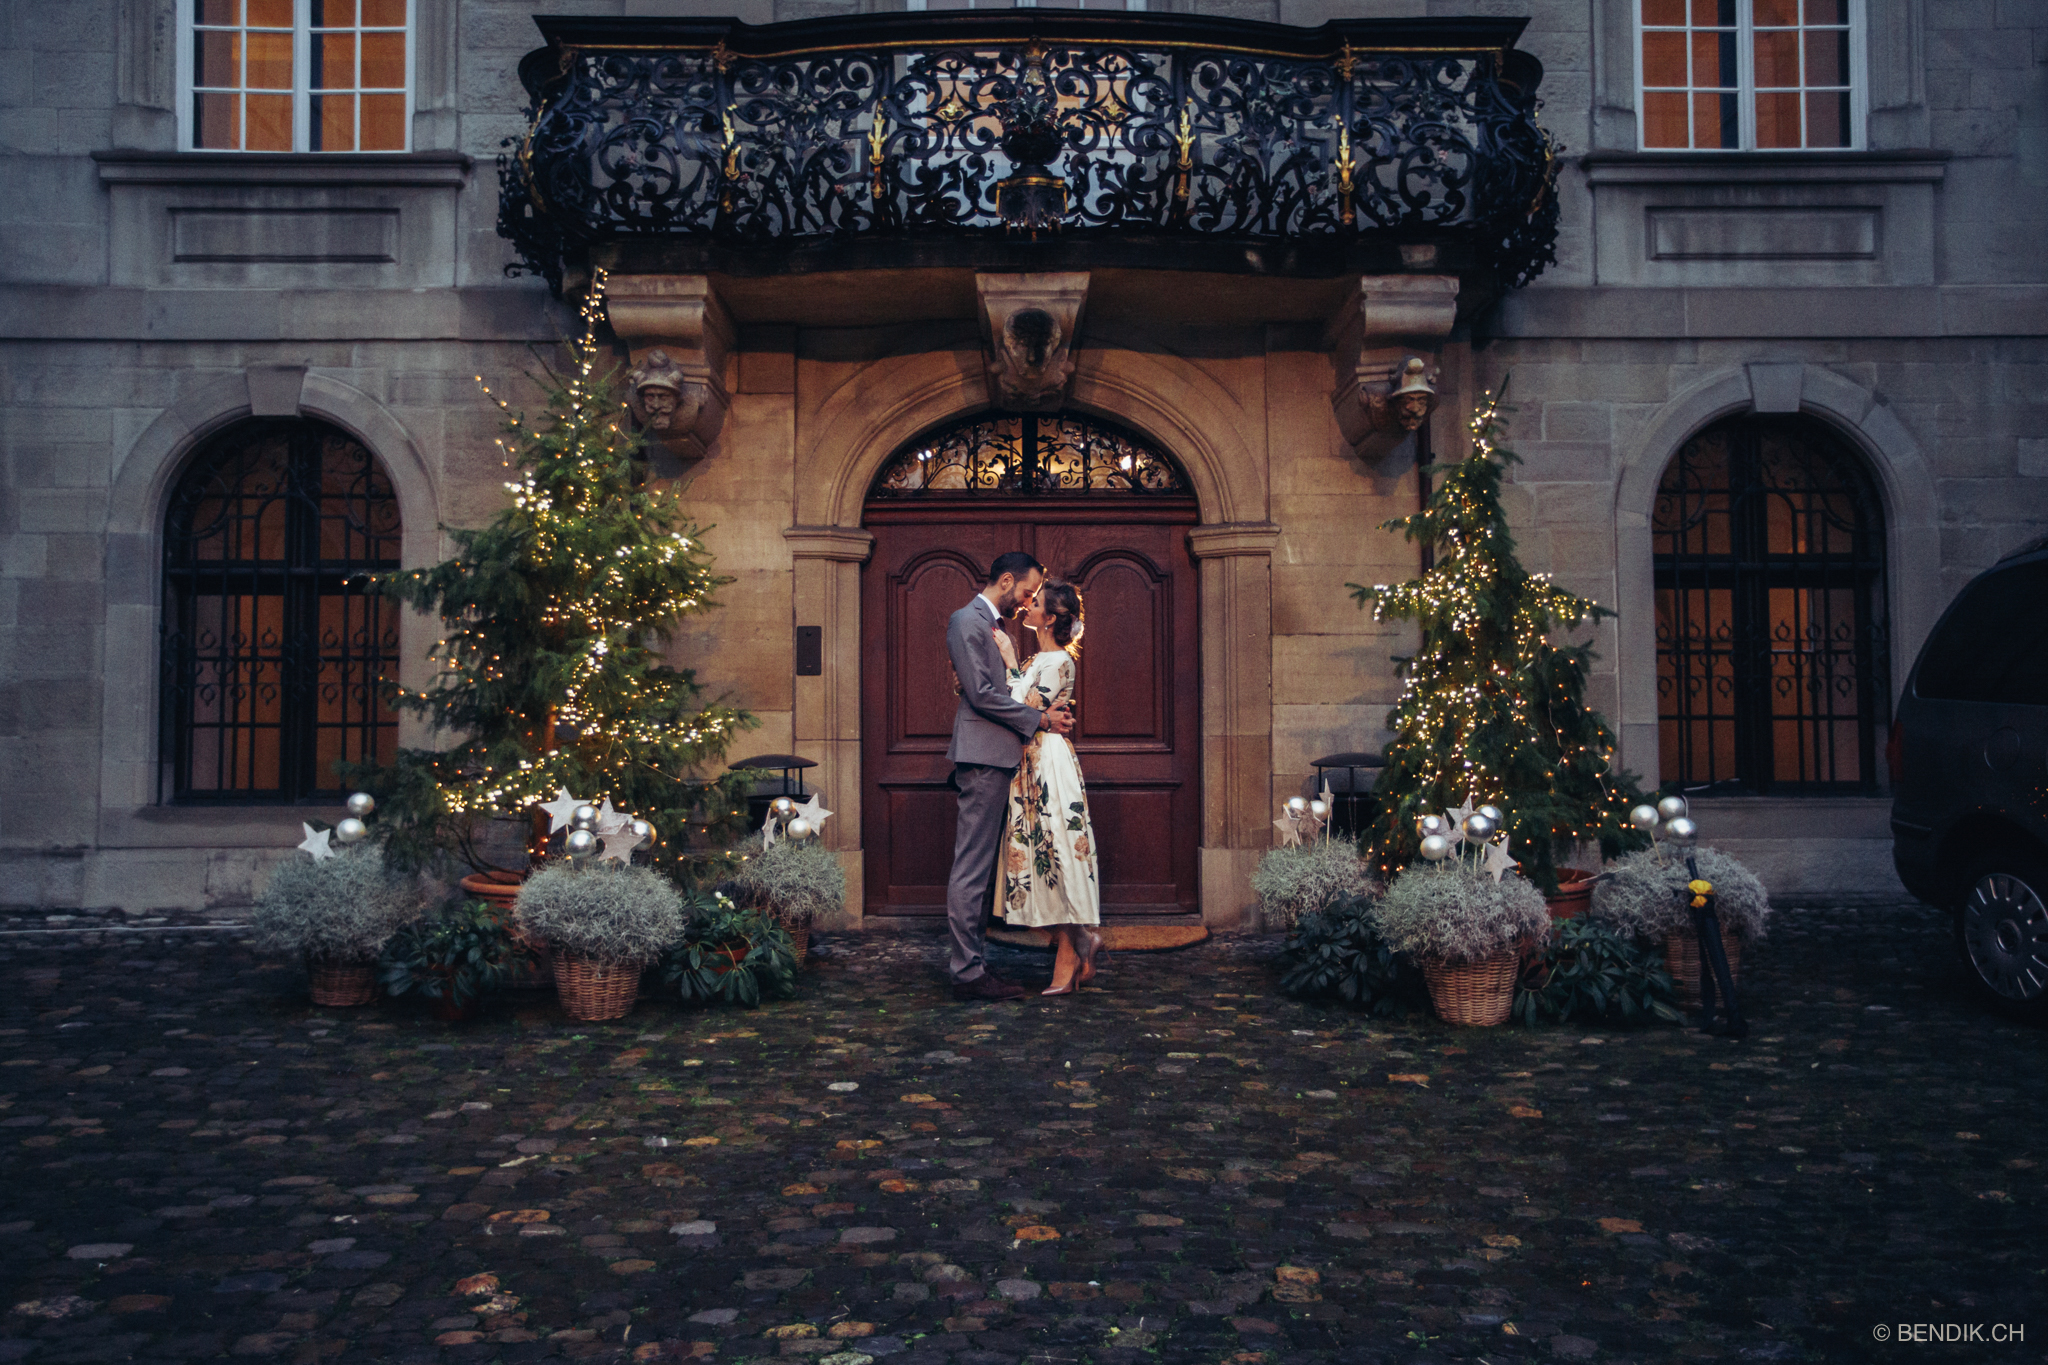 s_wedding_photoshoot_zurich_s_a_20161118_111